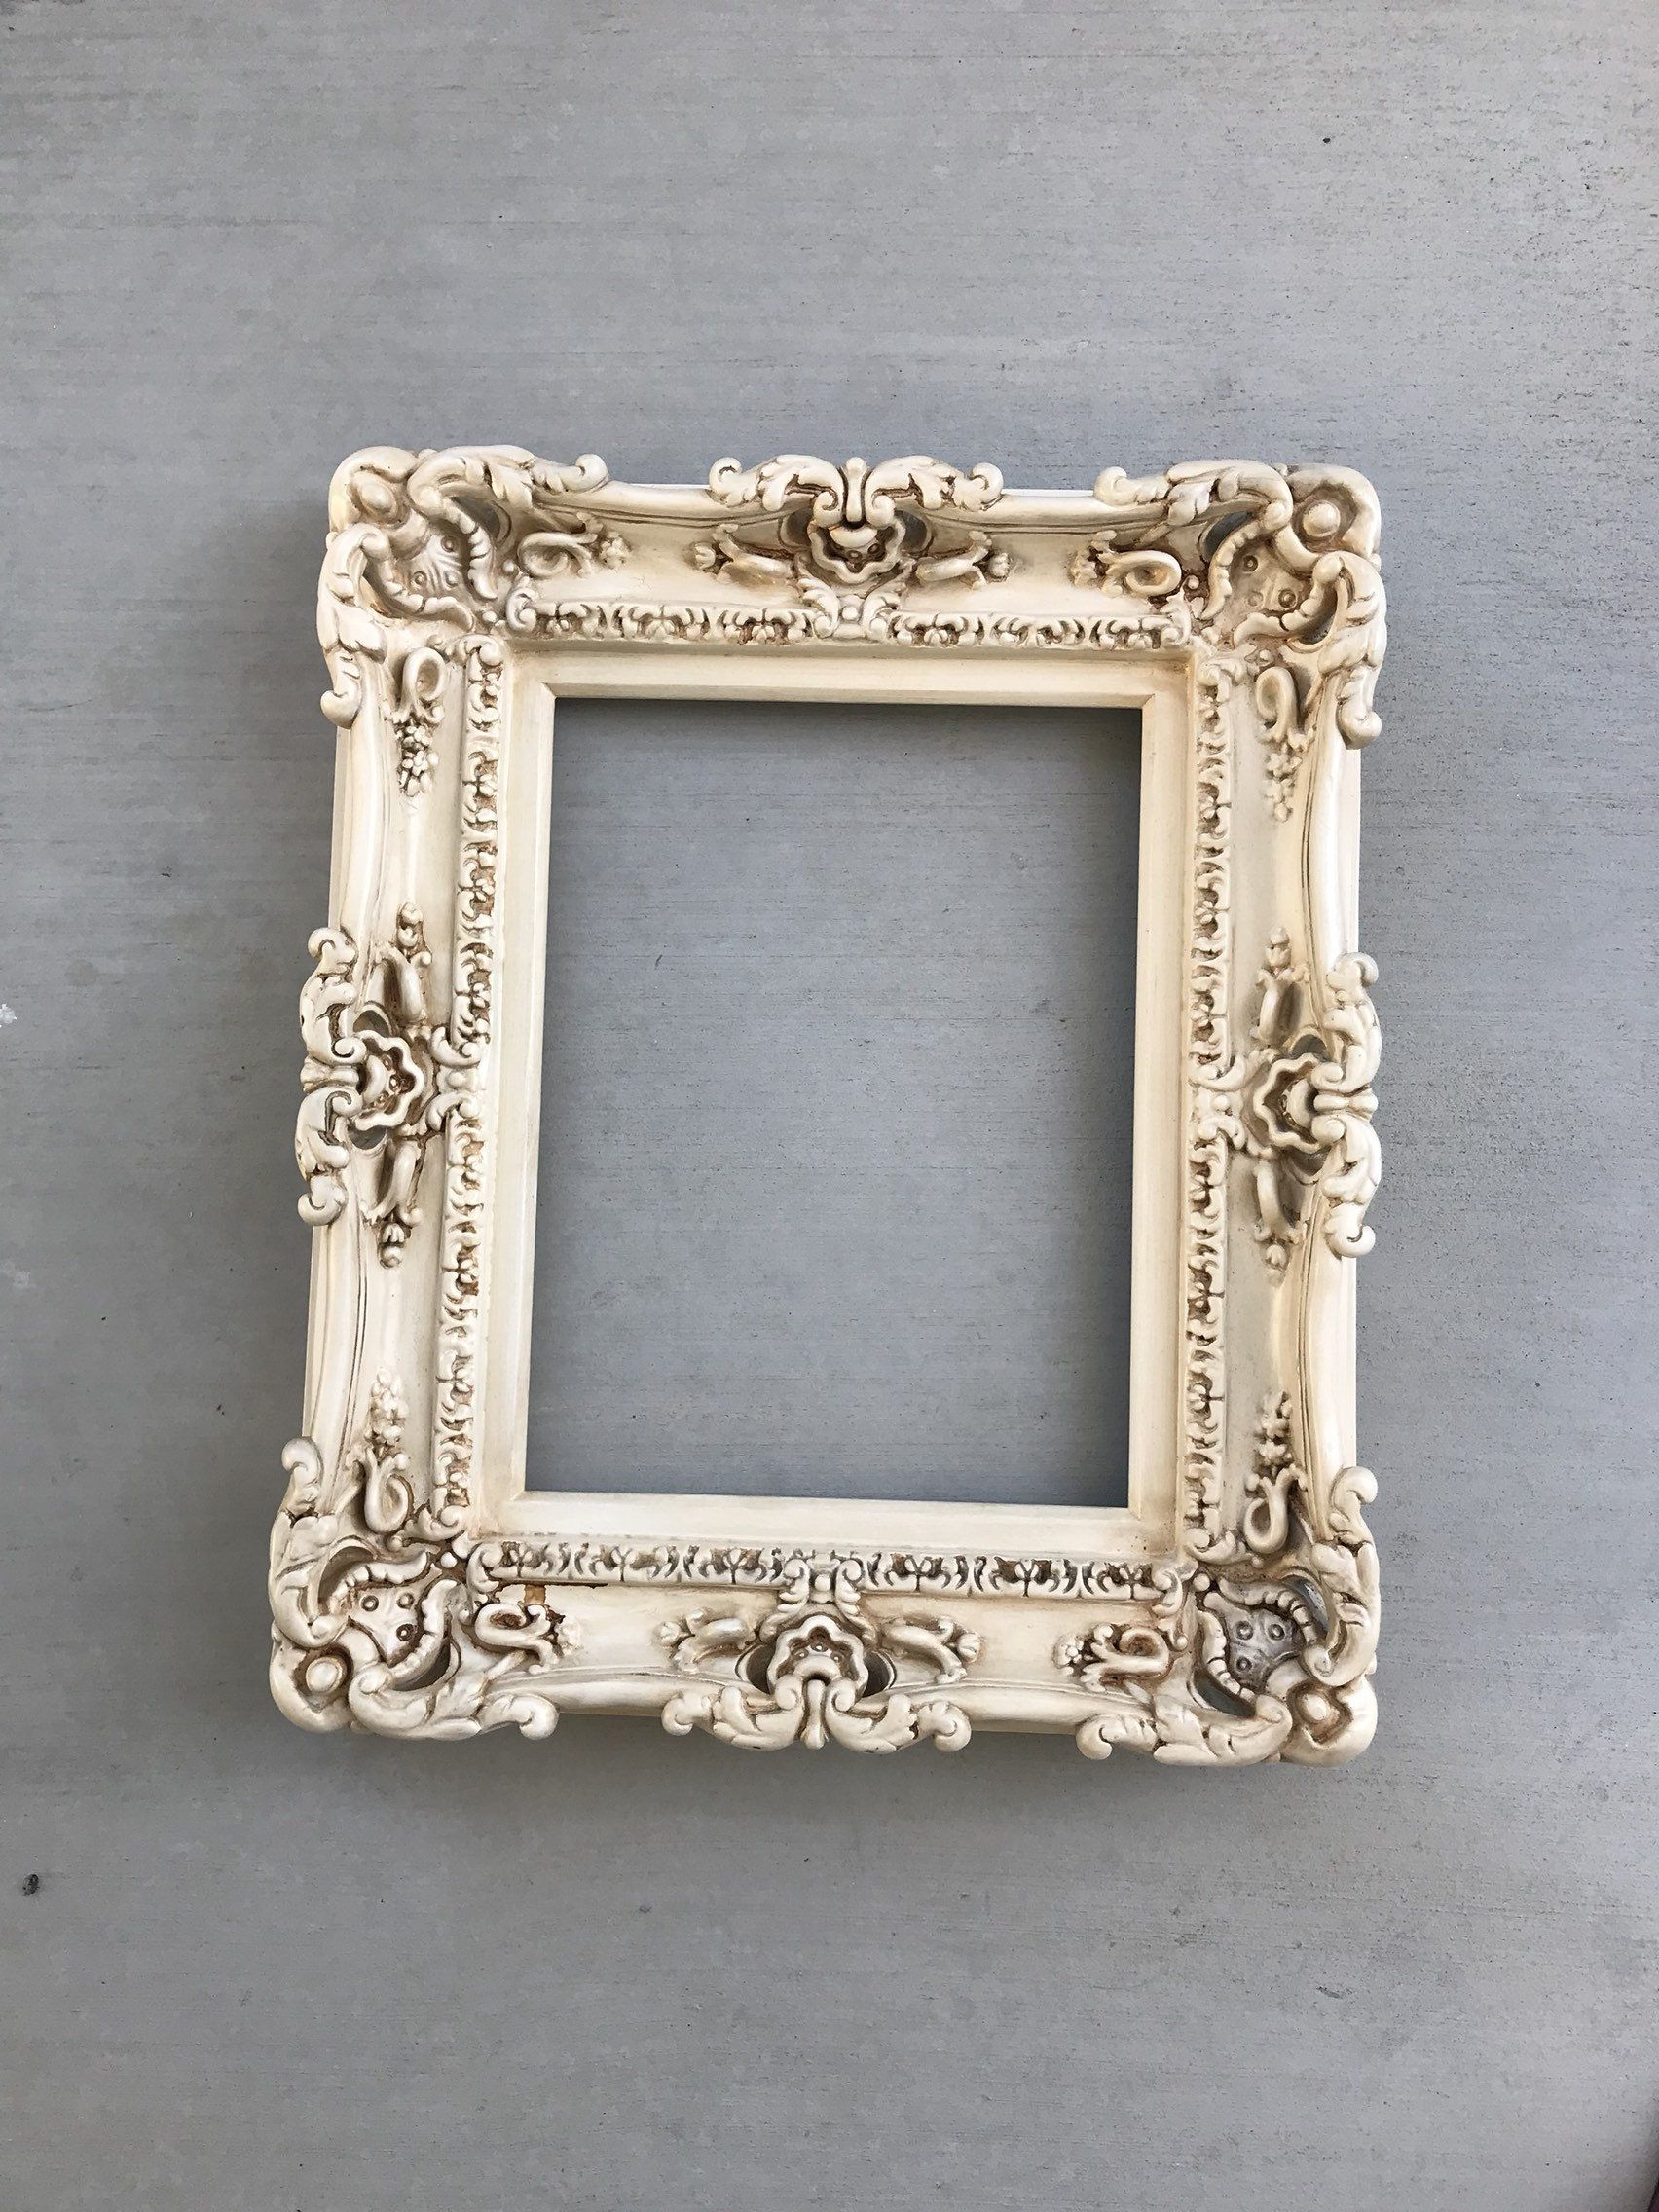 12x16 Vintage Shabby Chic Frame Decorative Baroque Frame Etsy In 2020 Chic Frames Ornate Picture Frames Shabby Chic Picture Frames